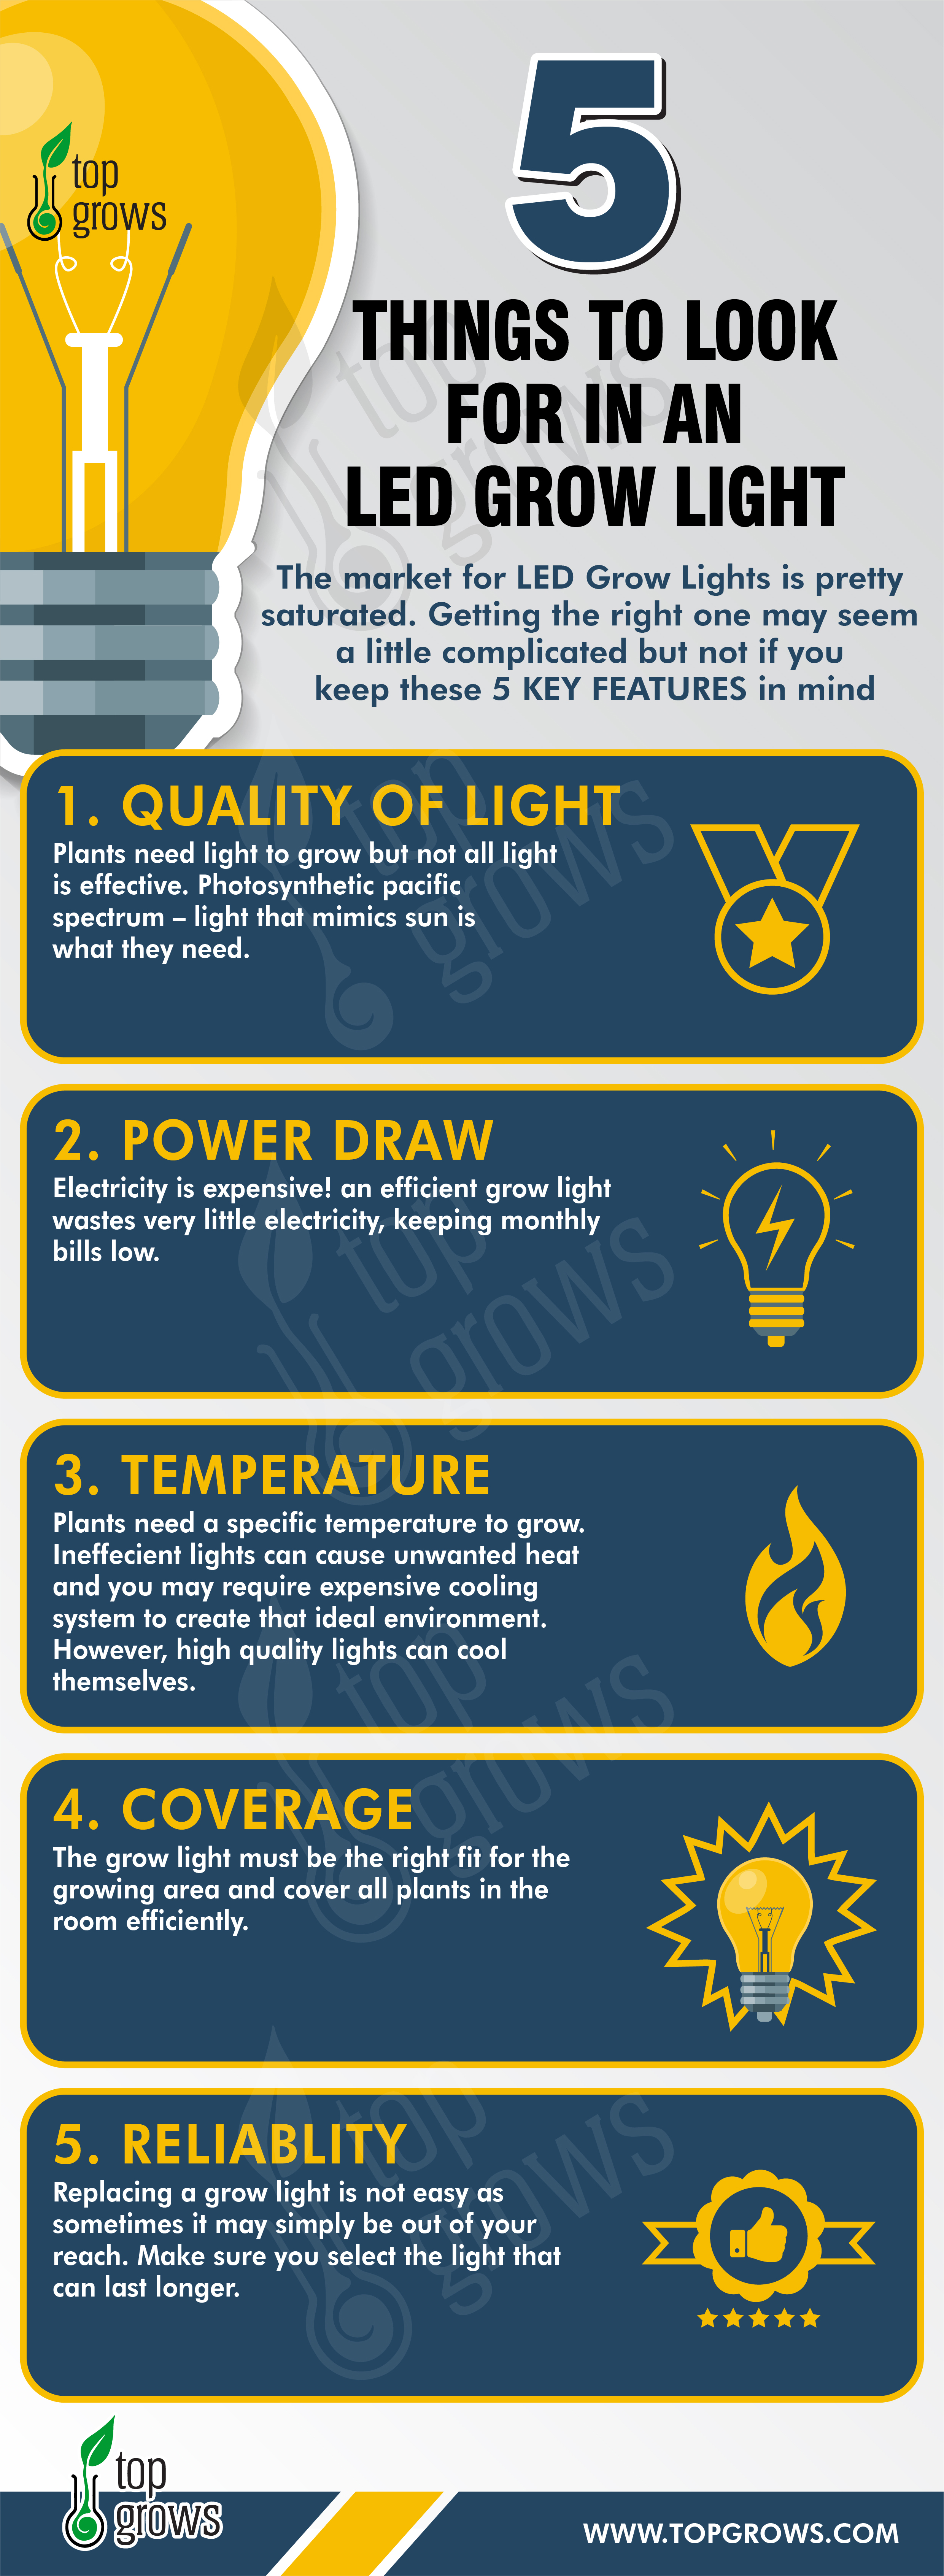 Things to look with in an led grow light